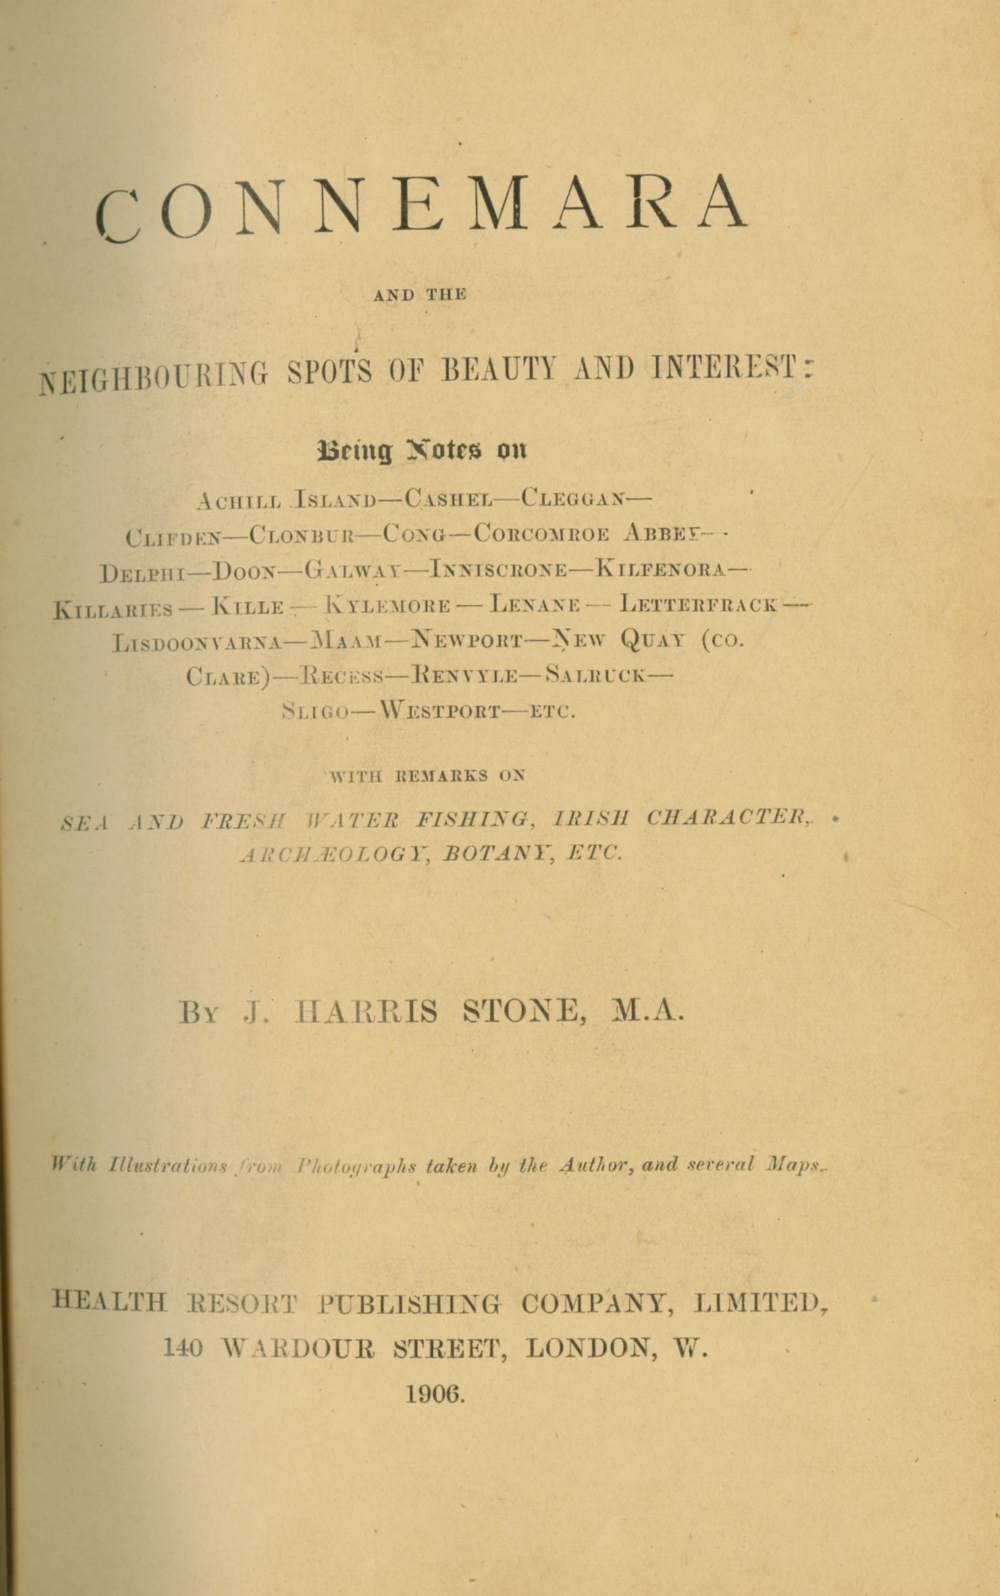 Stone (J. Harris) Connemara and the Neighbouring Spots of Beauty and Interest, L. 1906. First Edn.